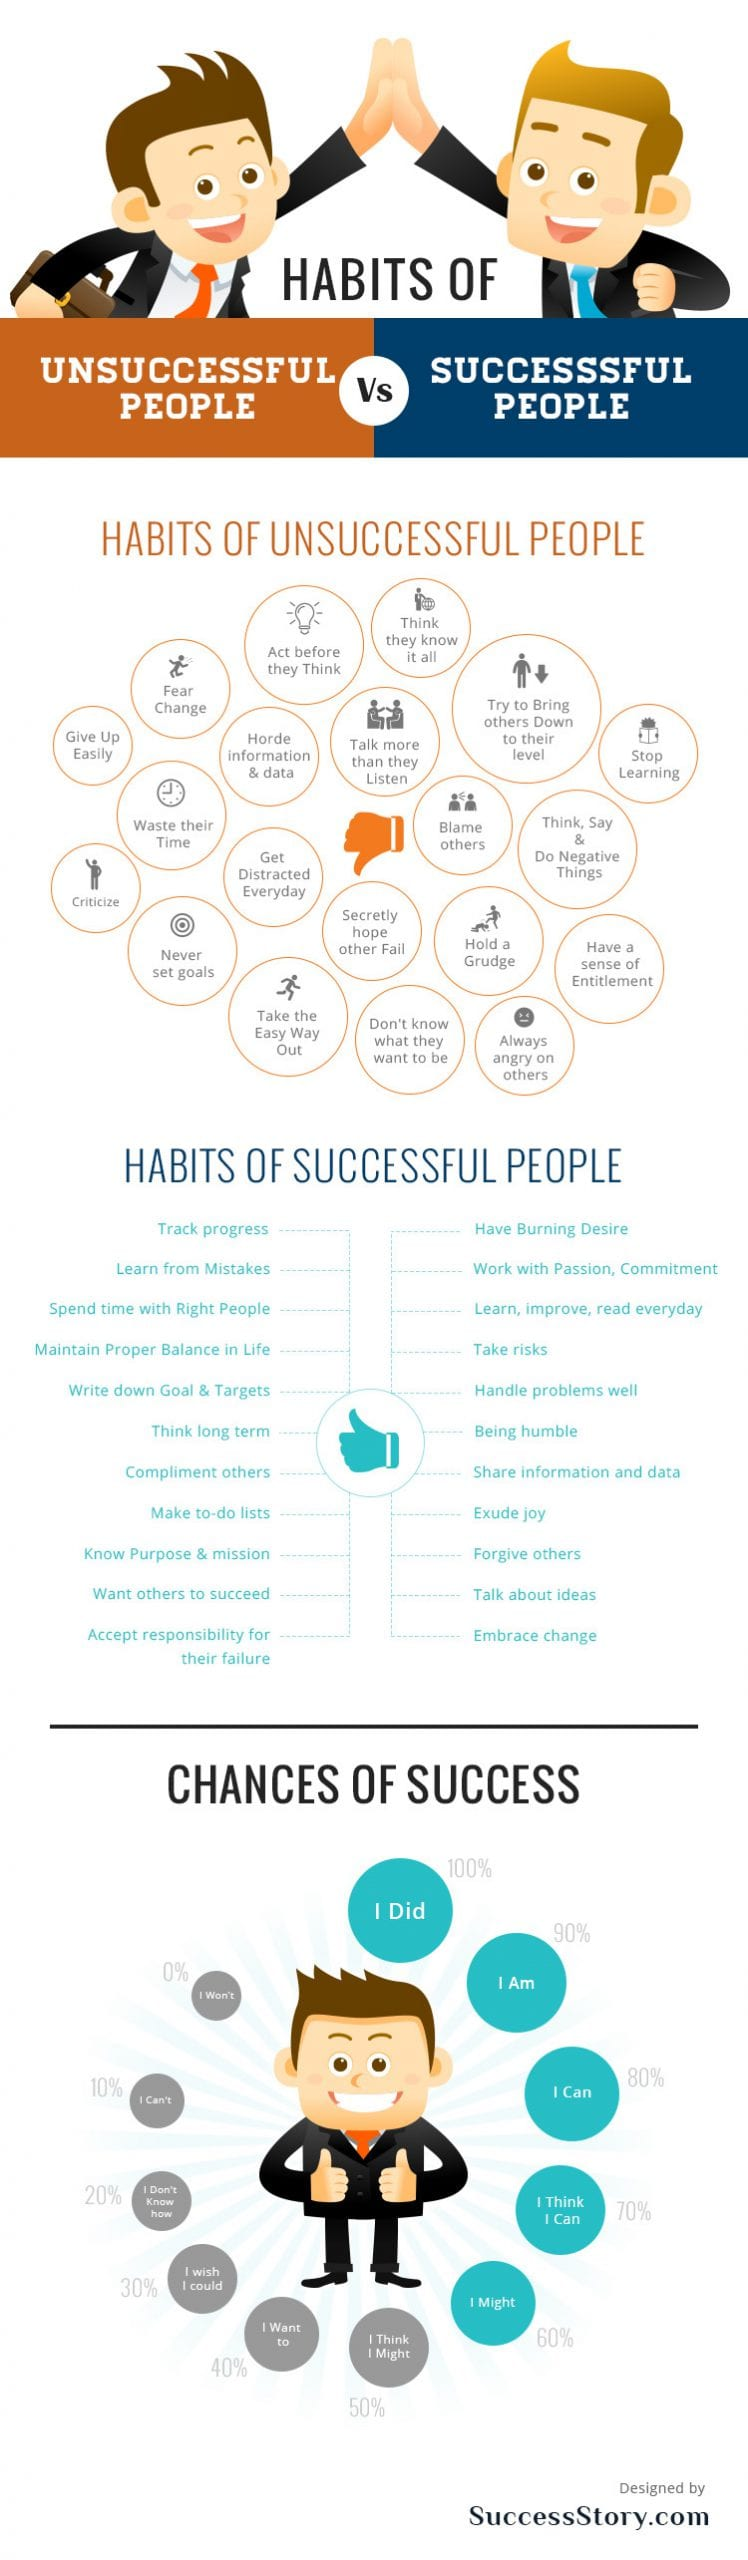 Successful vs. Unsuccessful people - success habits for investing and trading